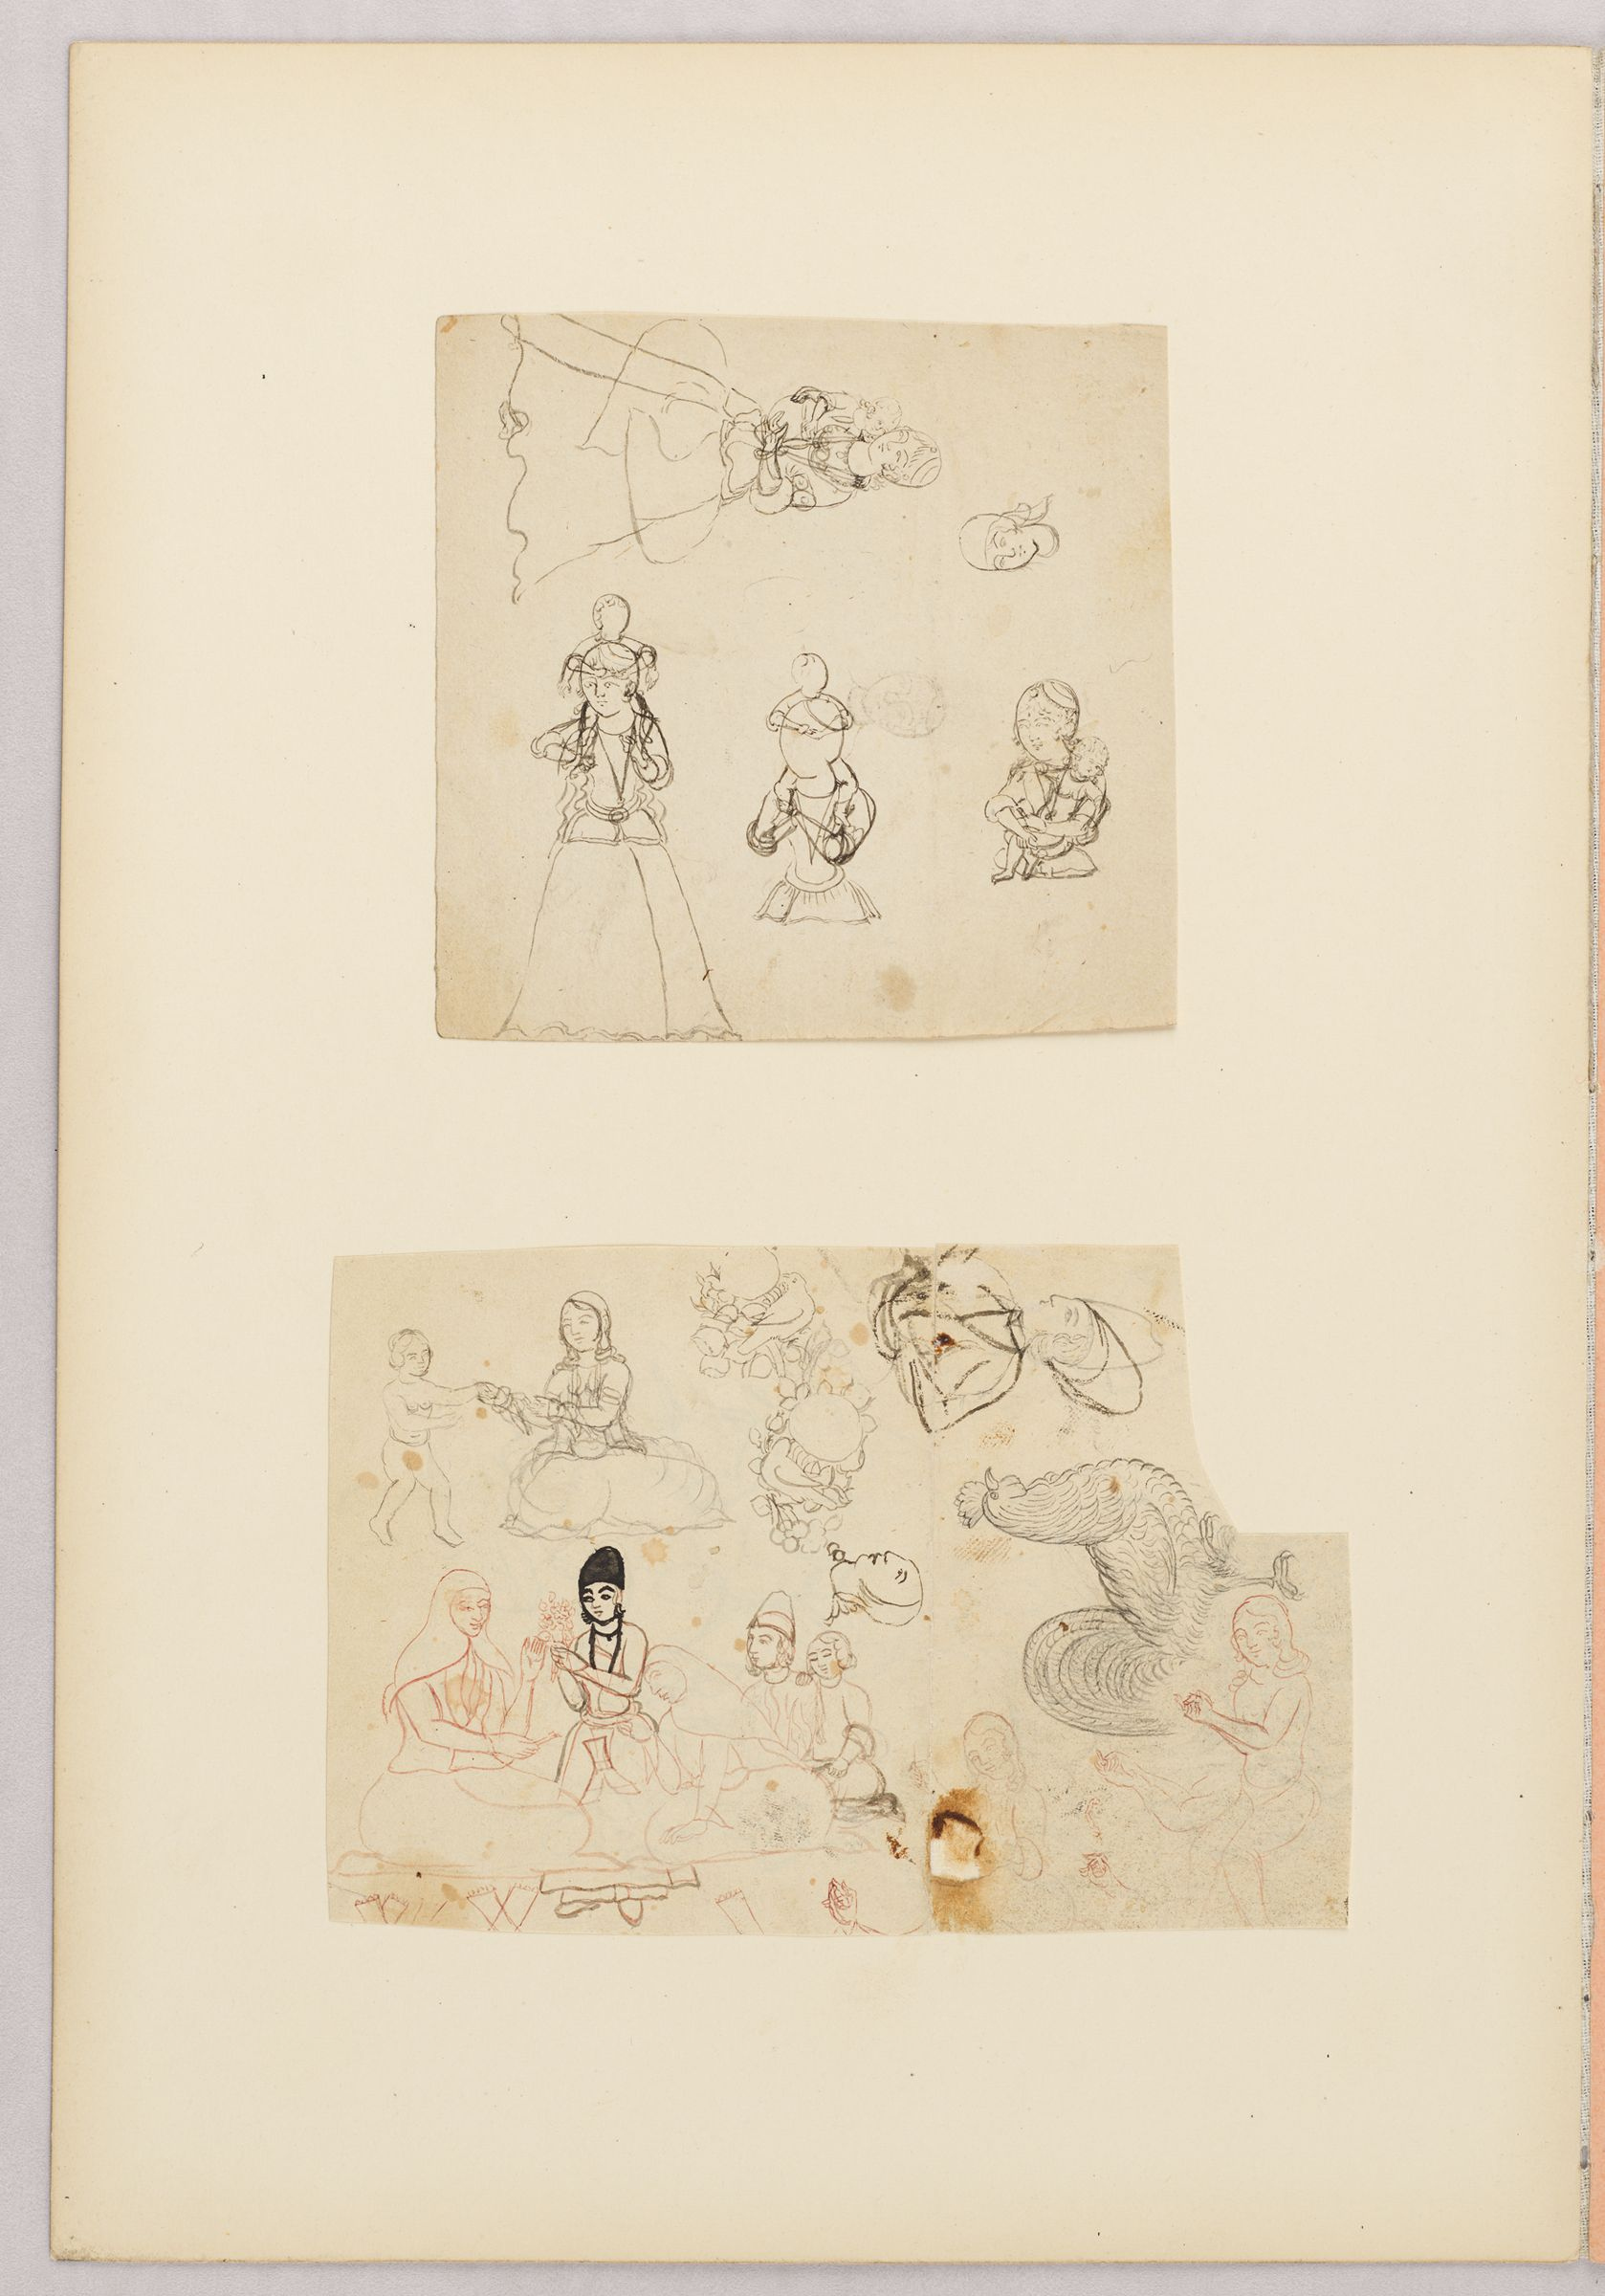 Folio 37 From An Album Of Drawings And Paintings: Two Sheets With Sketches Of People, Animals, And Bird And Flower Motifs (Recto); Blank Page (Verso)